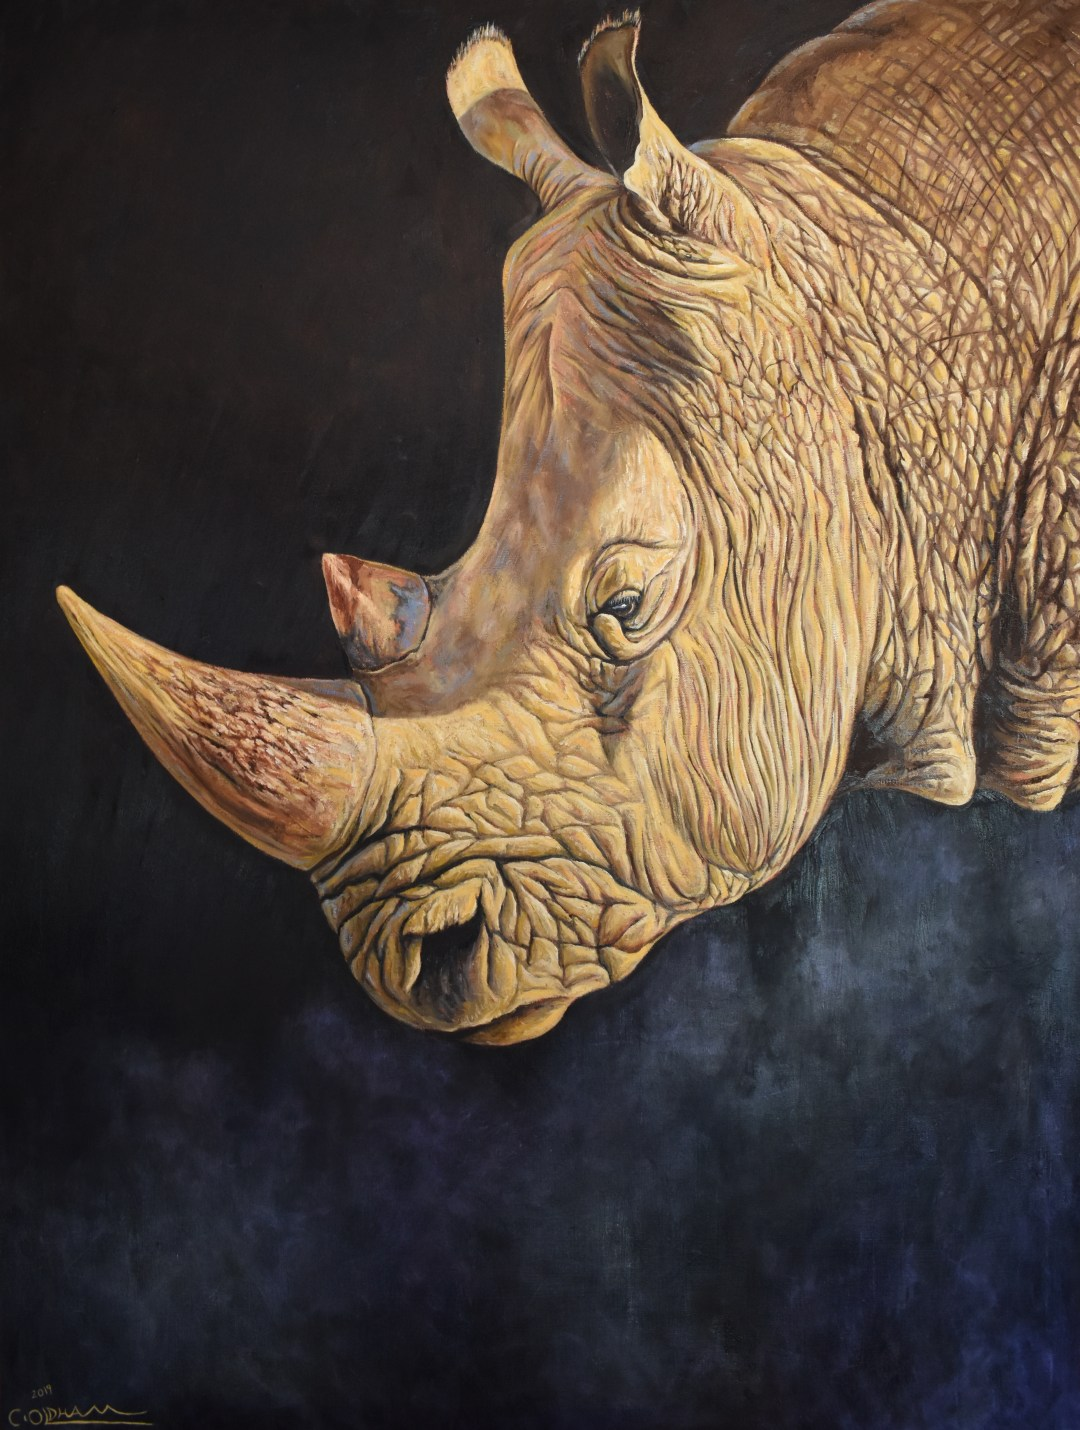 Oil painting of rhinoceros portrait by Cody Oldham